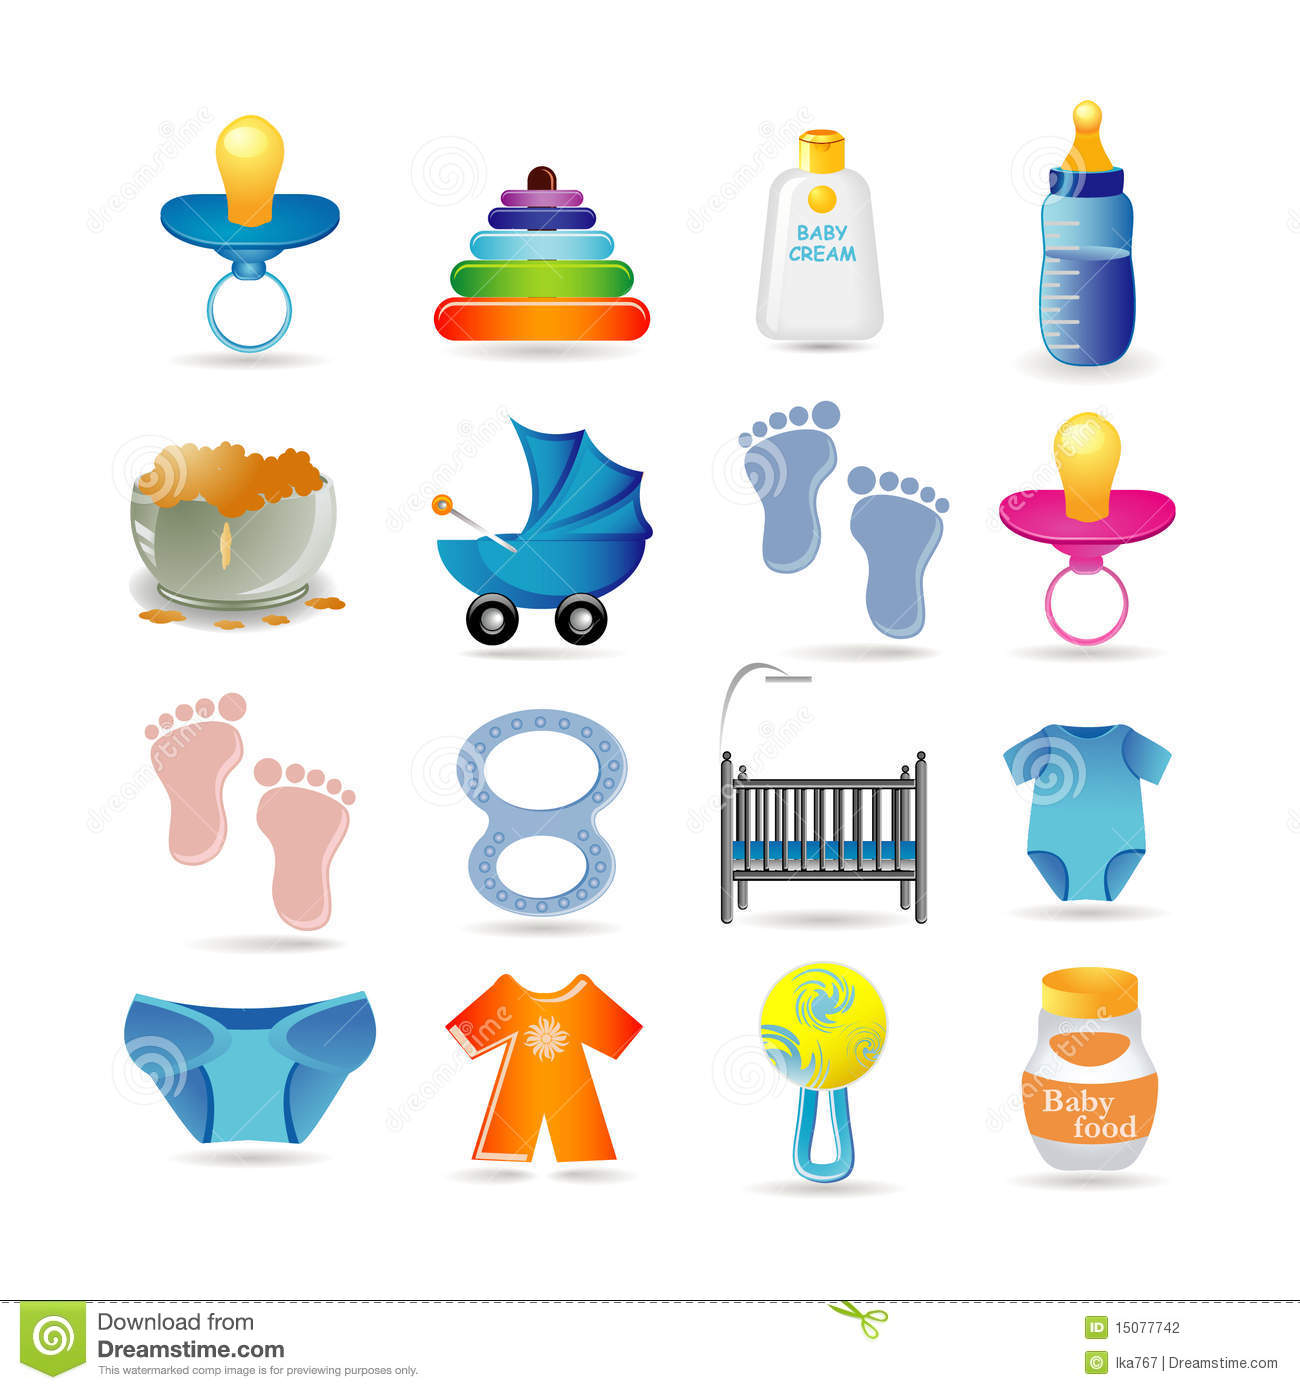 Baby icons set. Download thousands of free vectors on Freepik, the finder with more than a million free graphic resources.